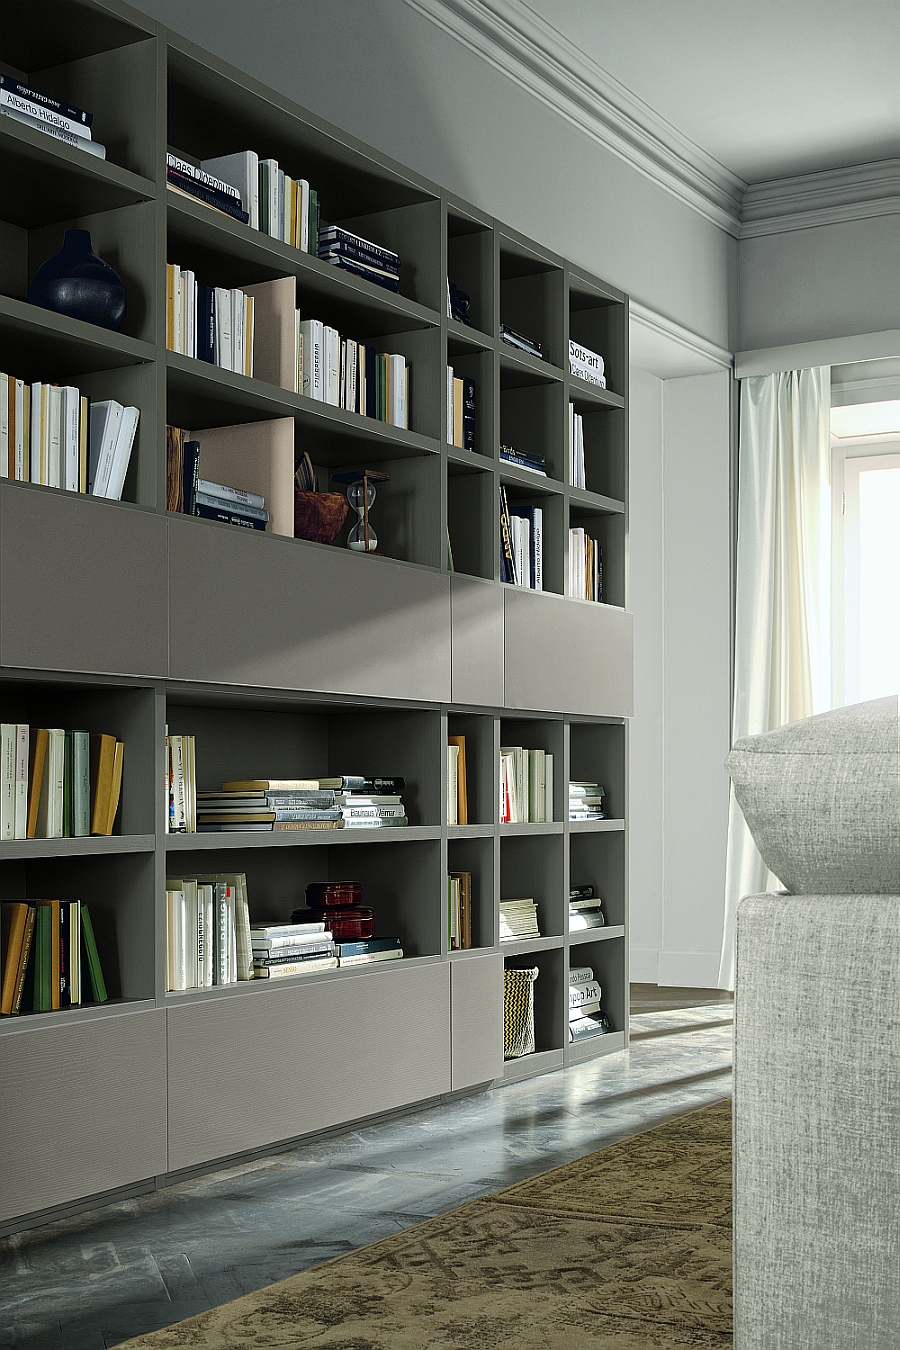 Striking modular living room unit with ample storage space for books